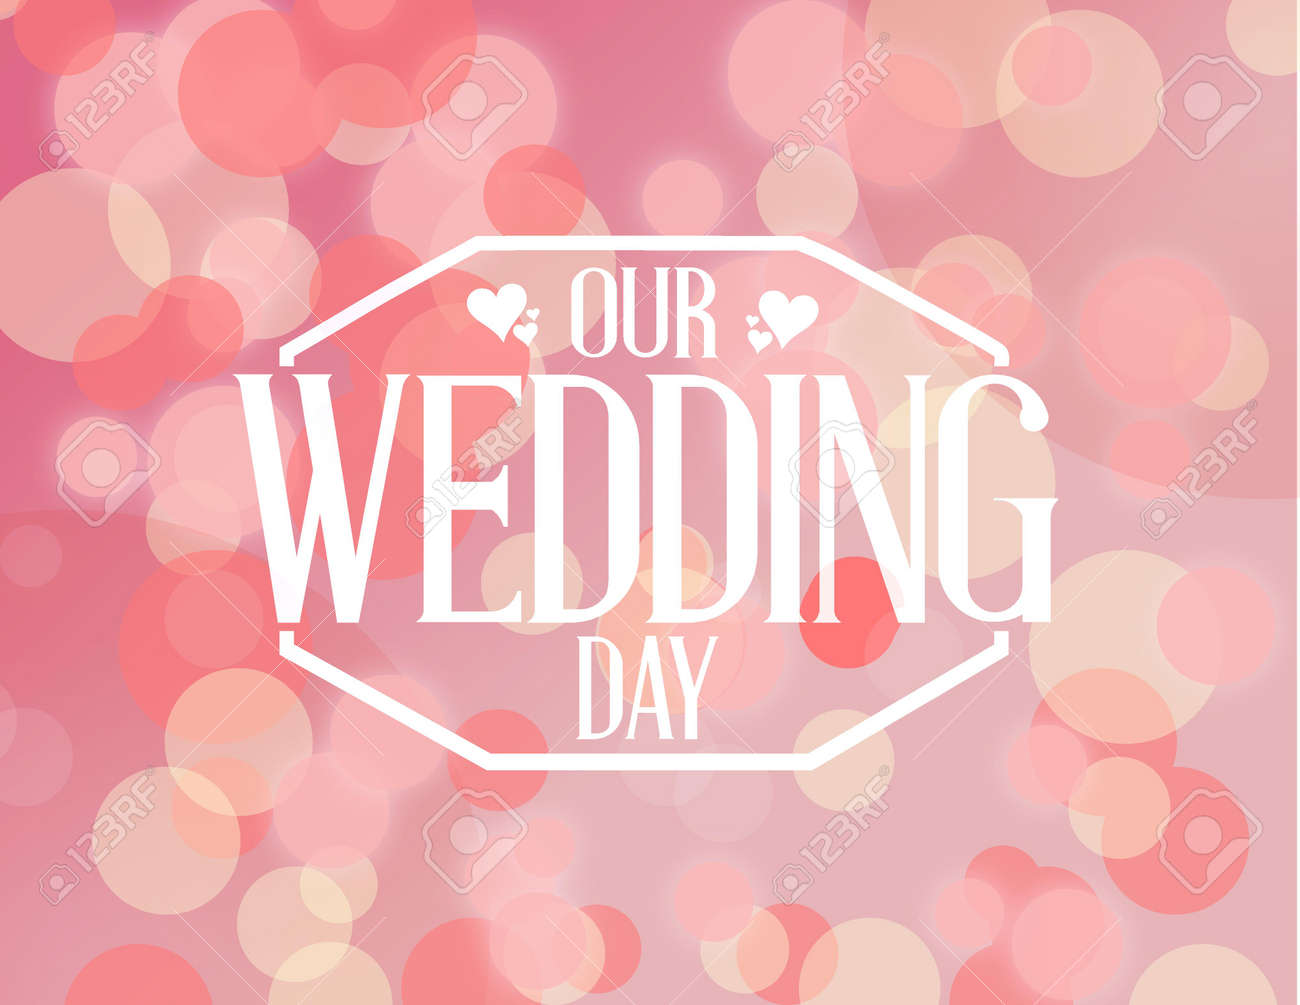 Our Wedding Day Pink Bokeh Background Illustration Design Stock